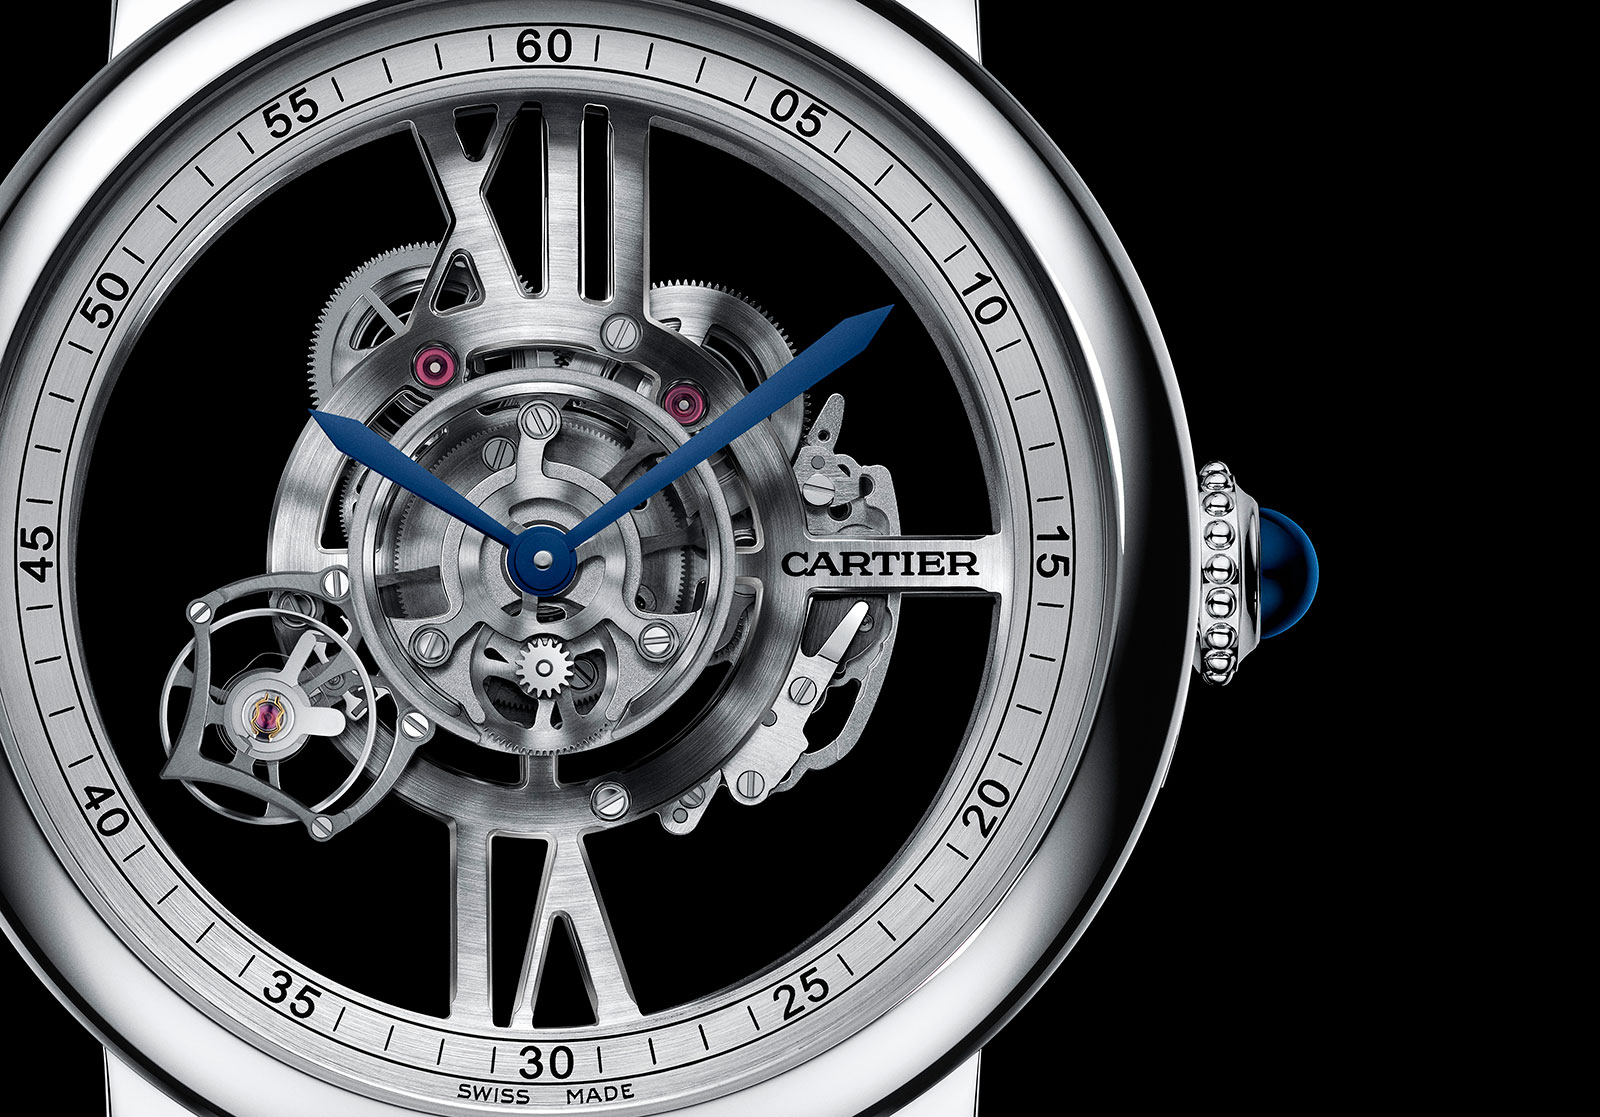 Rotonde-de-Cartier-Astrotourbillon-Skeleton-1